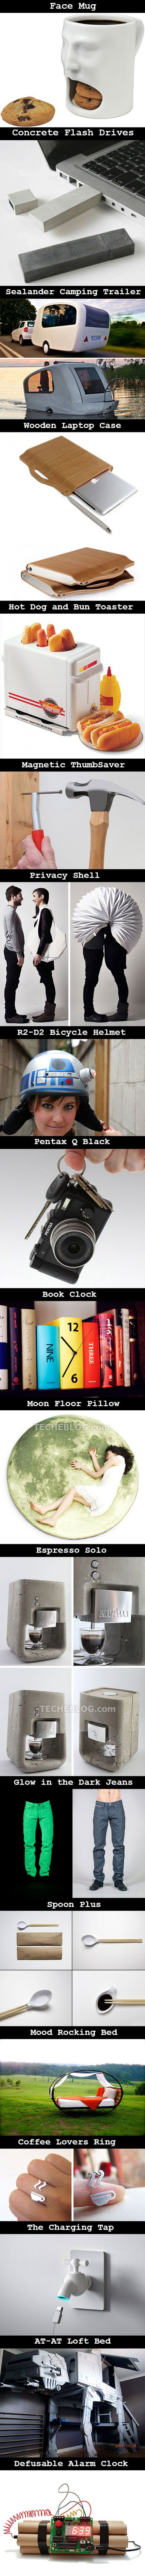 20 Simple Yet Clever Gadgets and Accessories That Are Awesome To Have